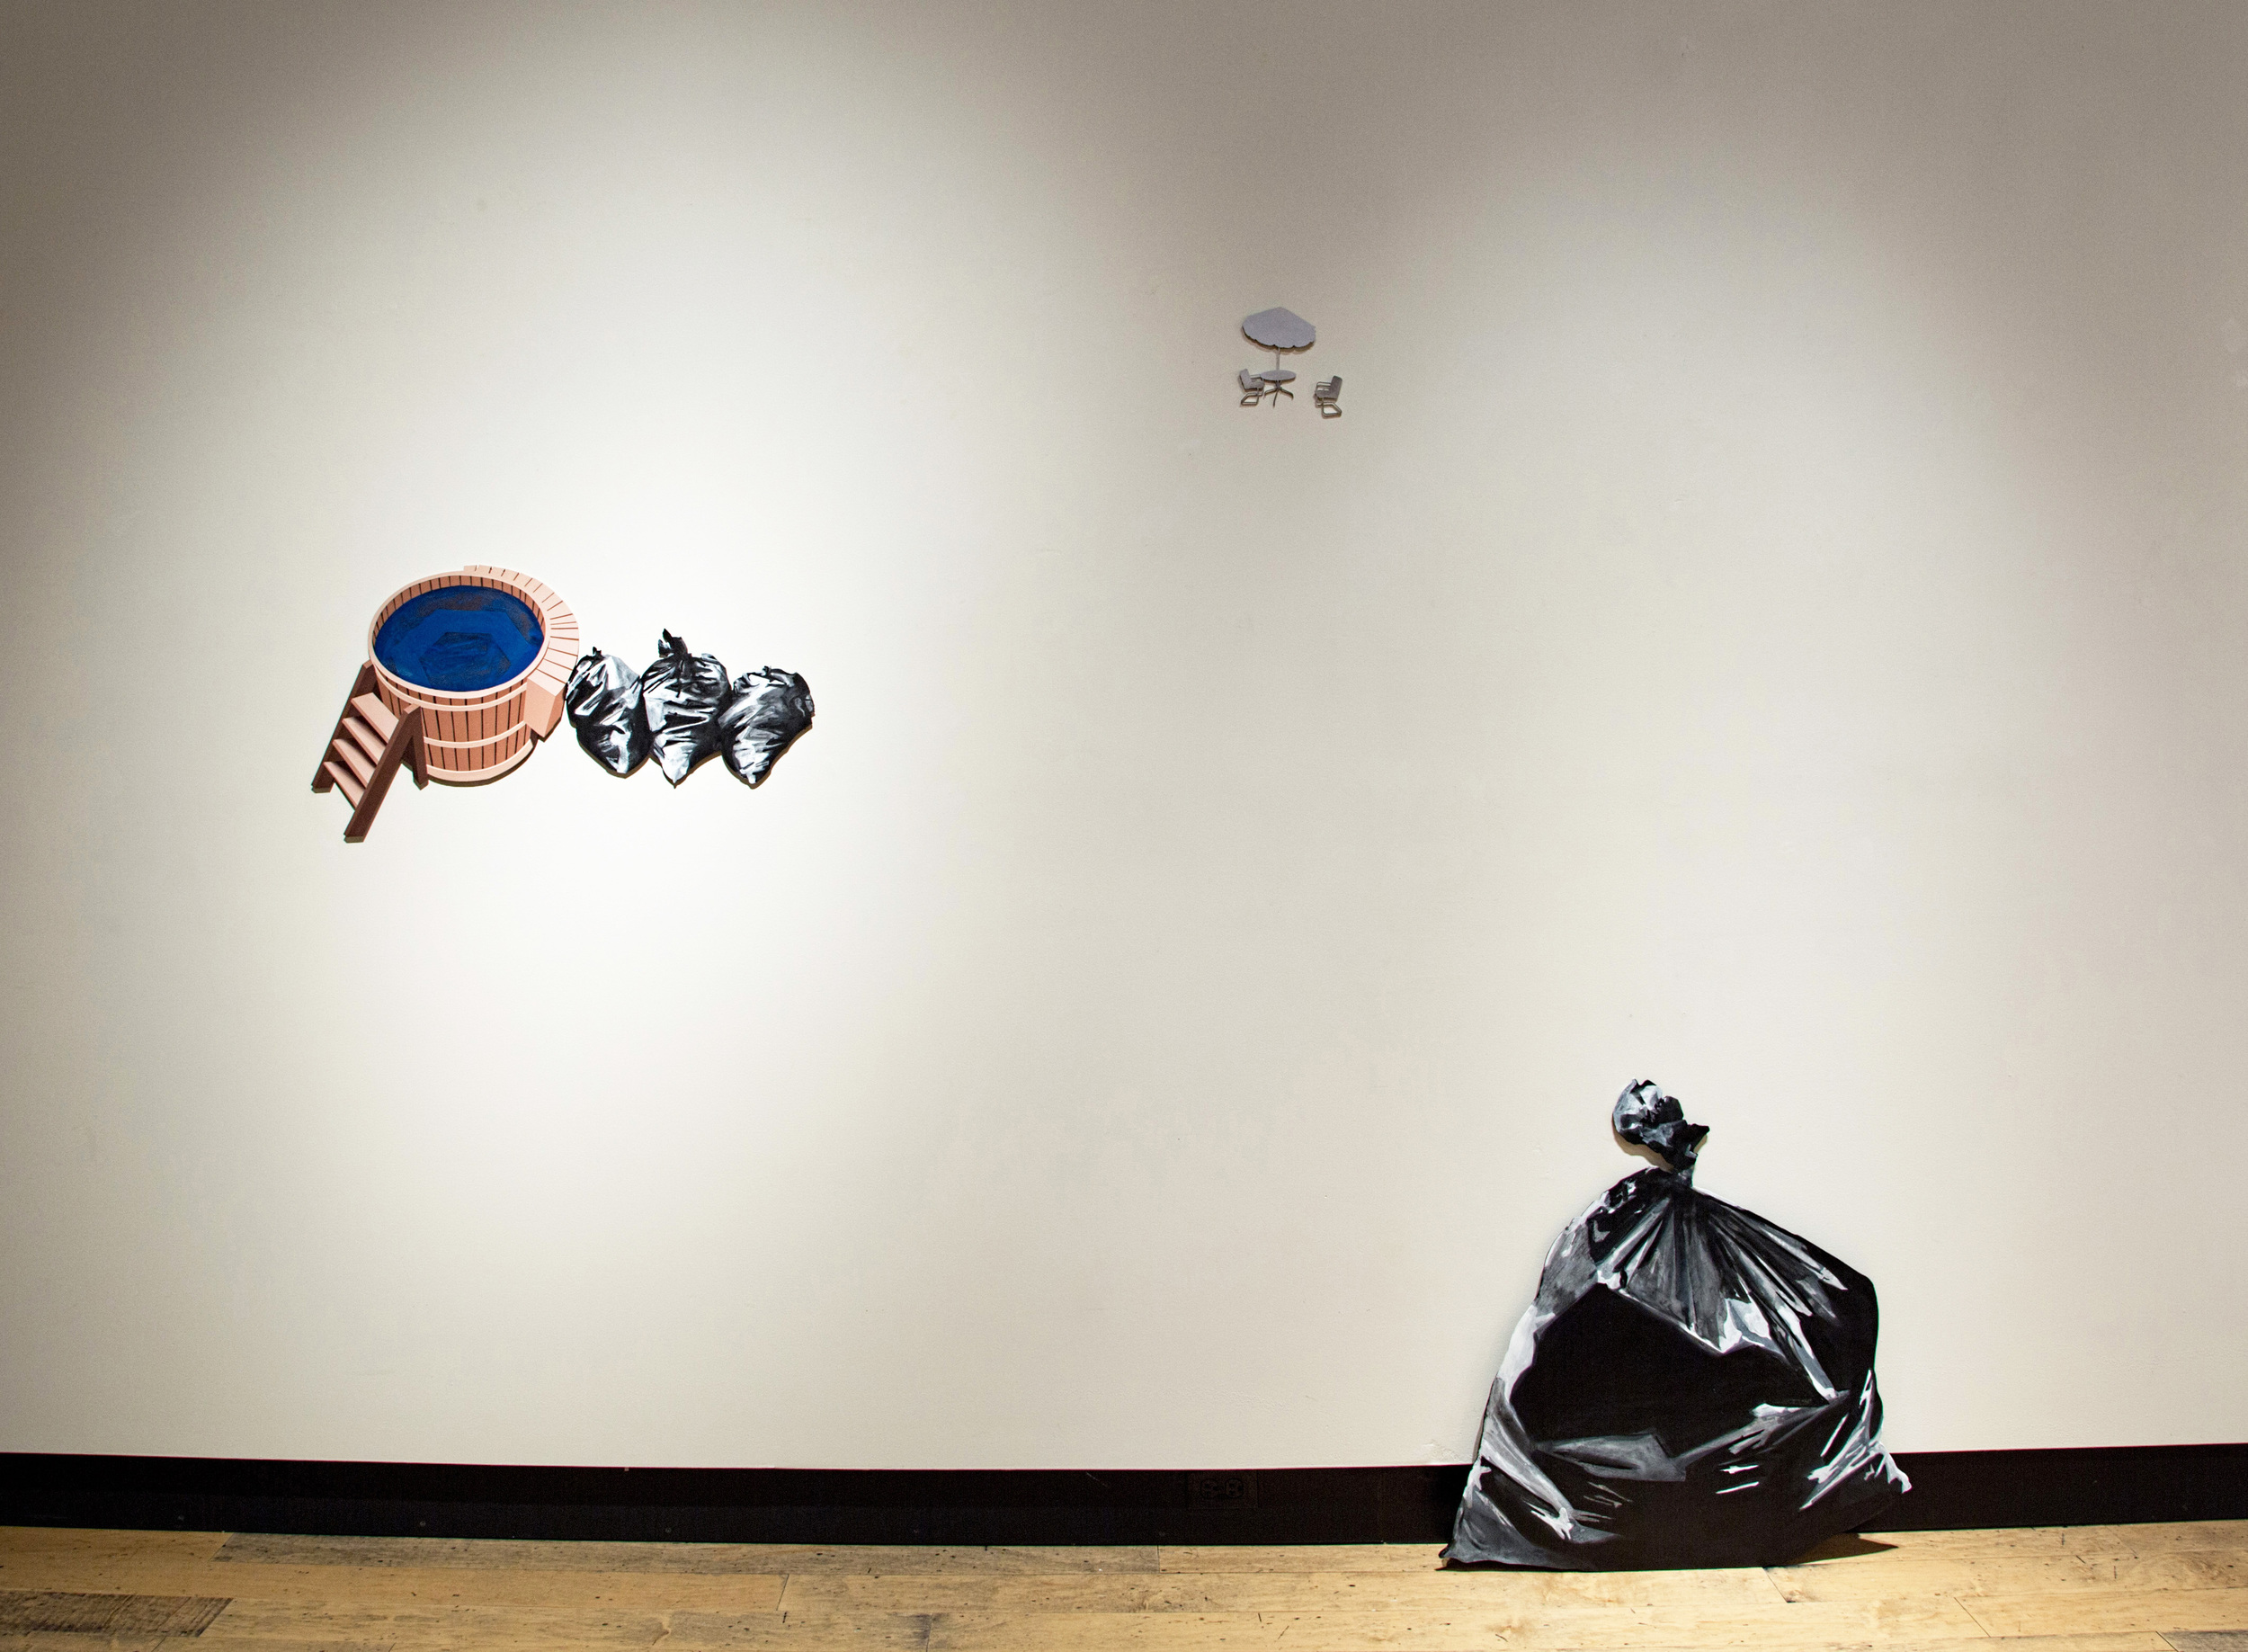 Lori Larusso, Dirt and Glitter, 2012, acrylic on four shaped panels, approx 78 x 62 inches installed